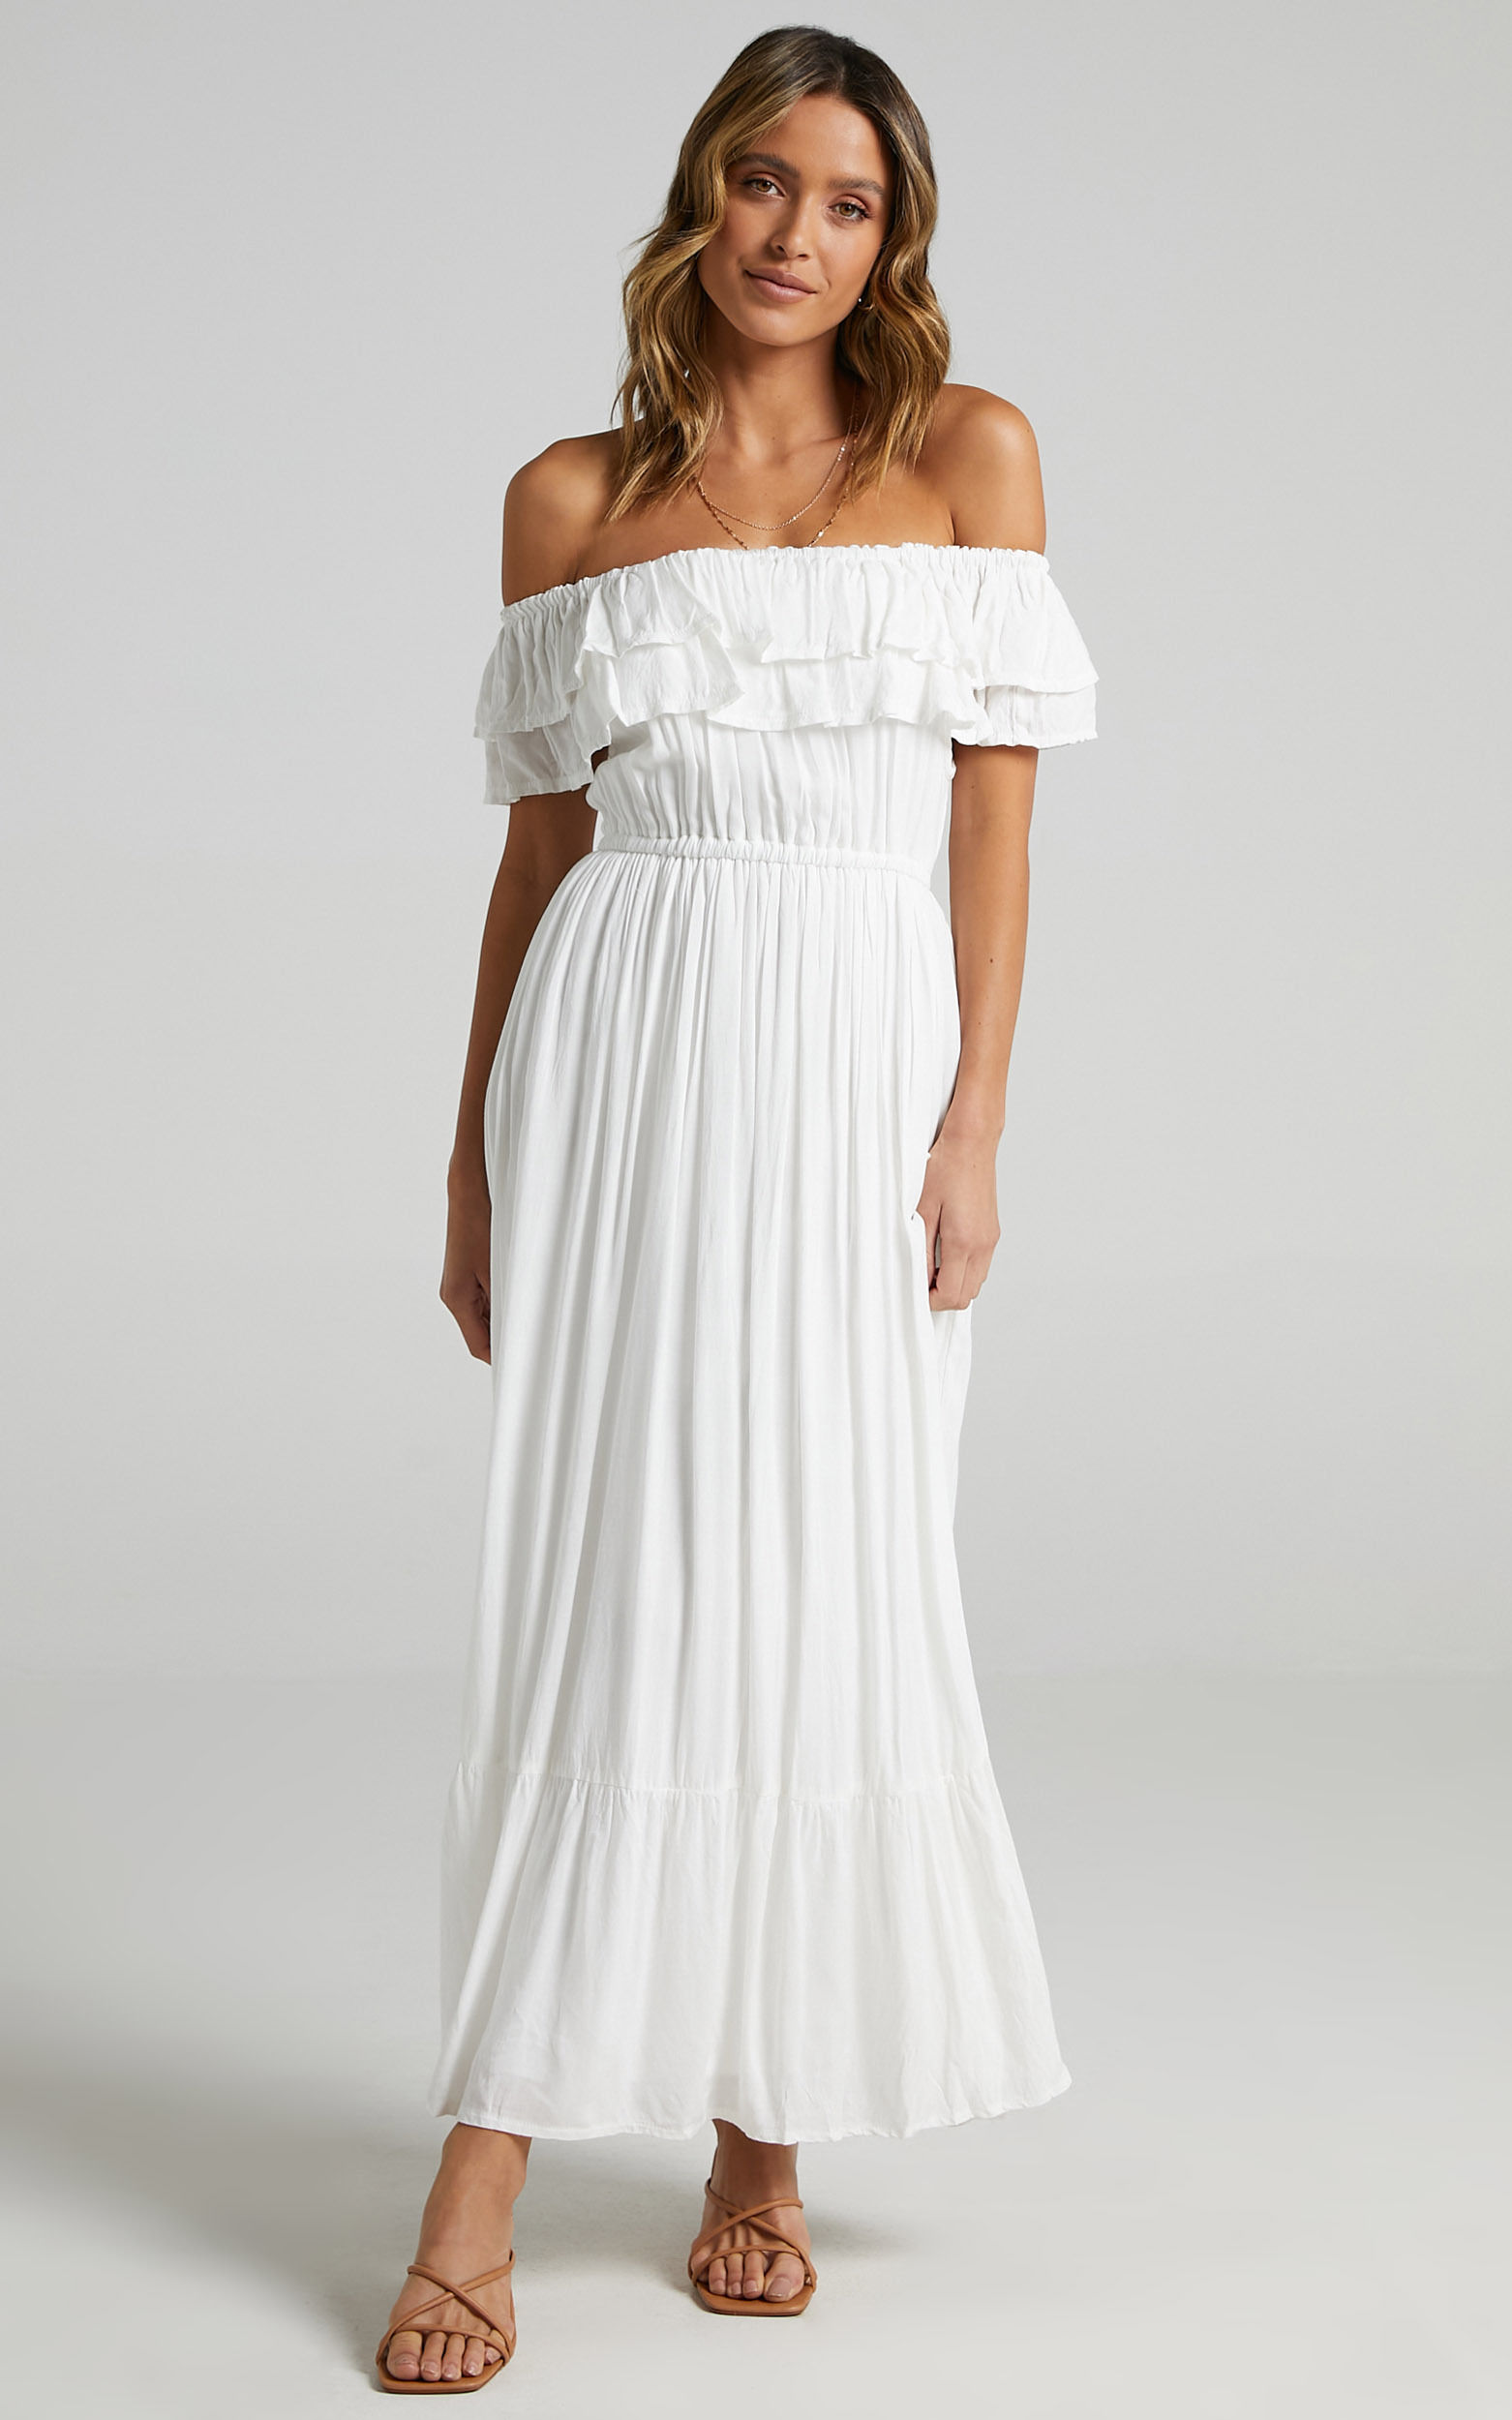 Notre Dame Maxi Dress in White - 08, WHT6, hi-res image number null